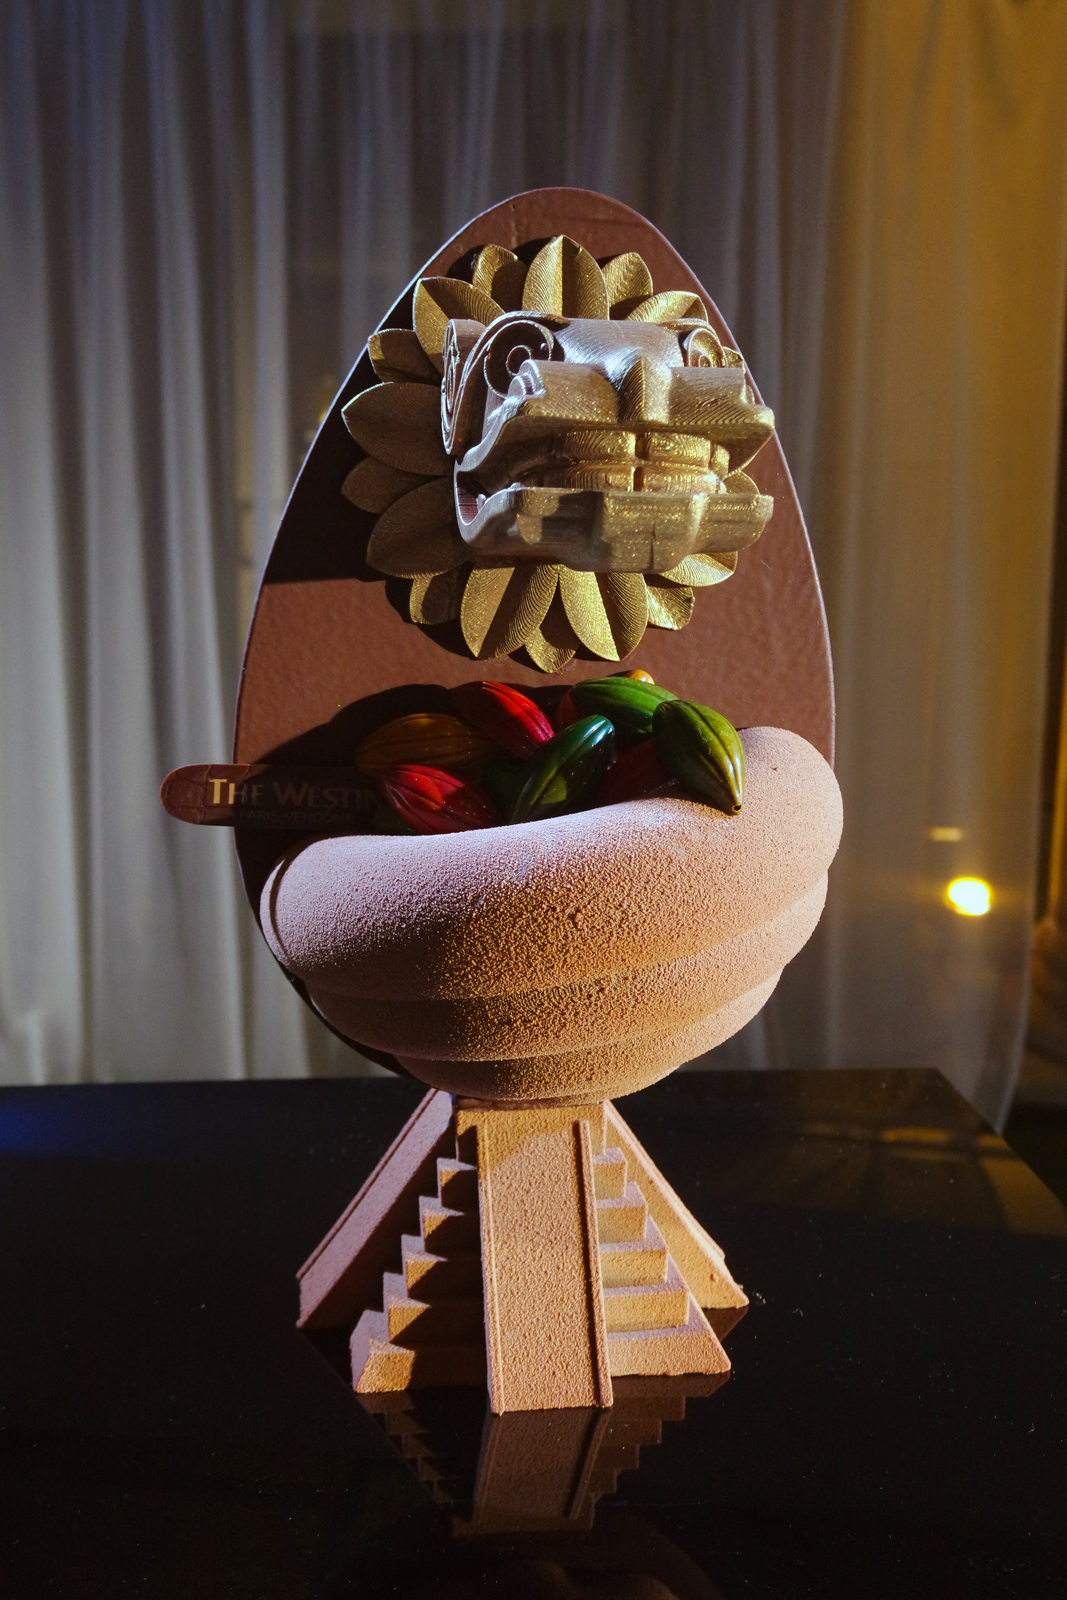 Oeuf de Pâques 2016 QUETZALCOATL chocolat noir 66 pour cent Forastero origine Mexique par Ken Thomas chef patissier The Westin Paris Vendôme Hotel photo united states of paris blog